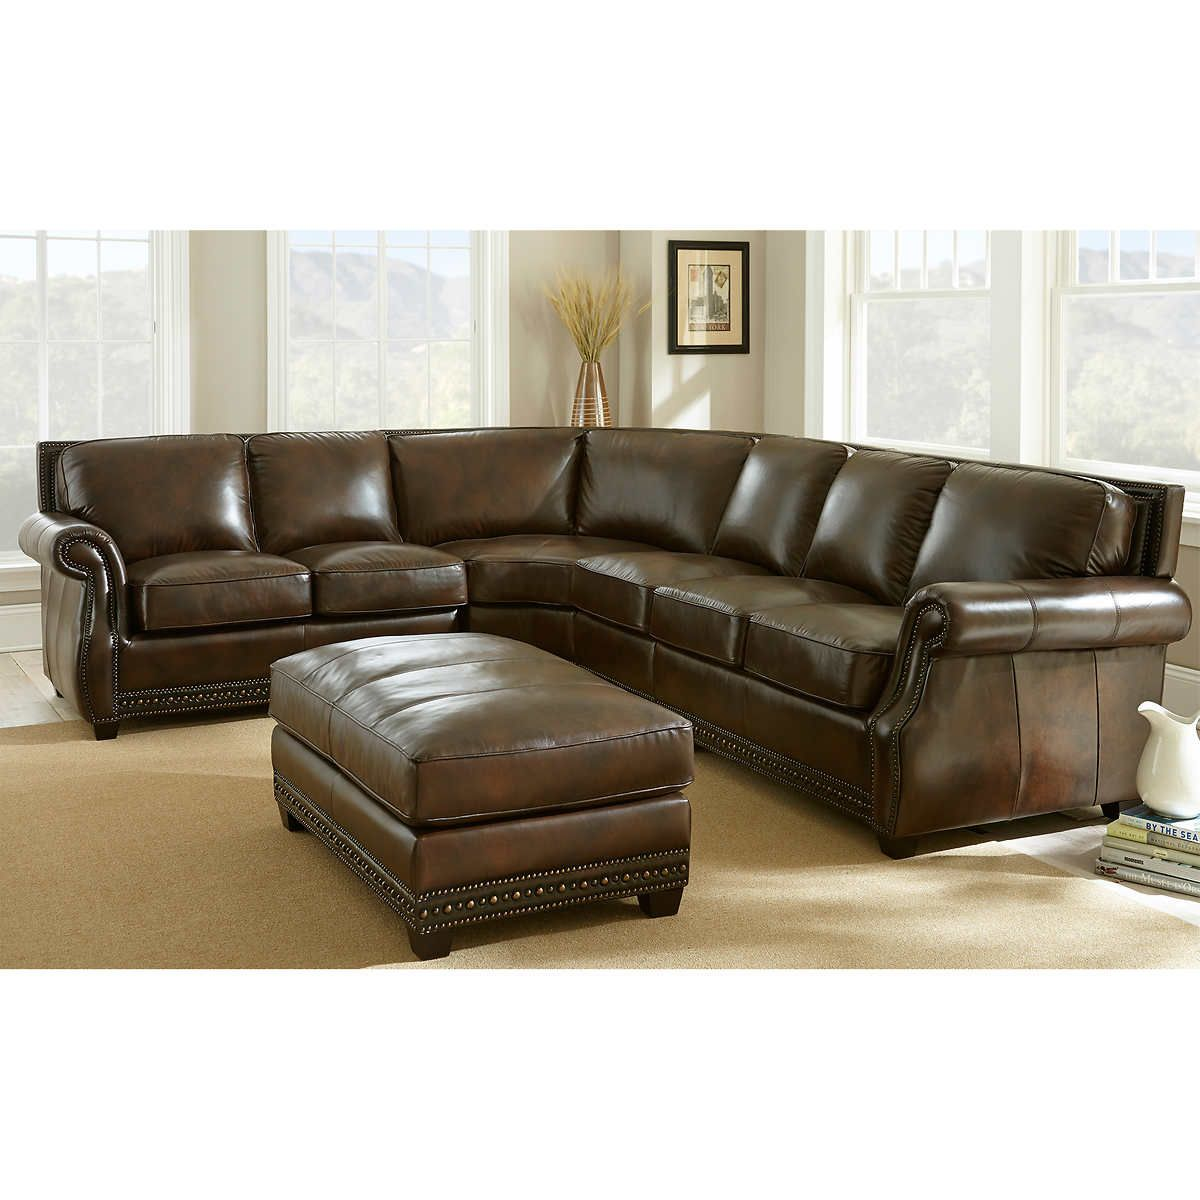 Best Awesome Leather Couch Sectional New Leather Couch 400 x 300